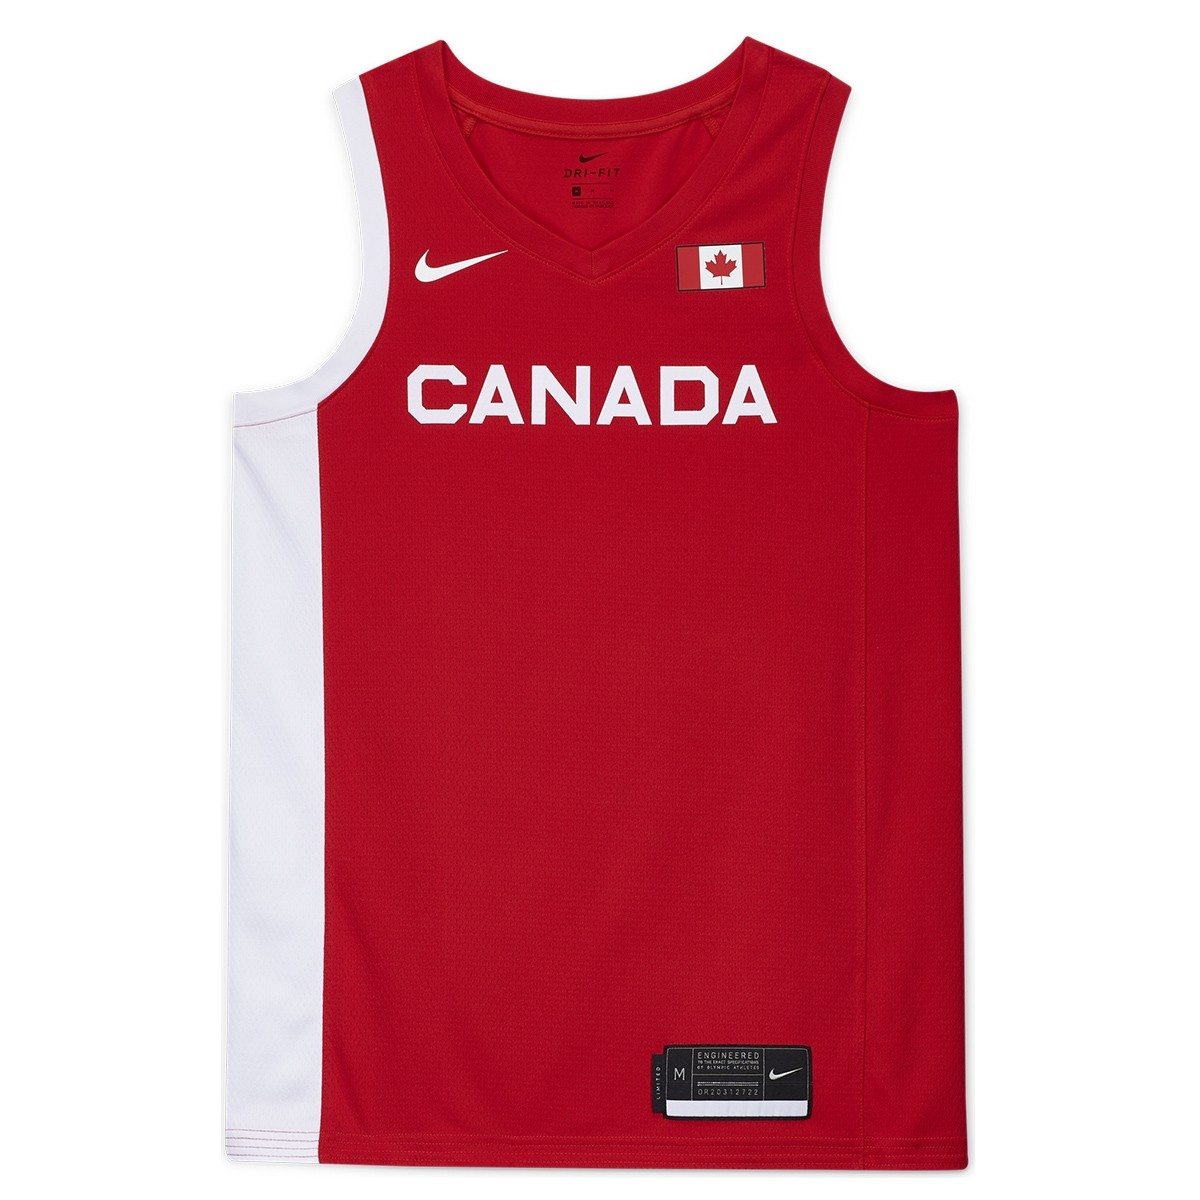 Nike Canada Olympics Jersey Tokyo 2020 'Red'